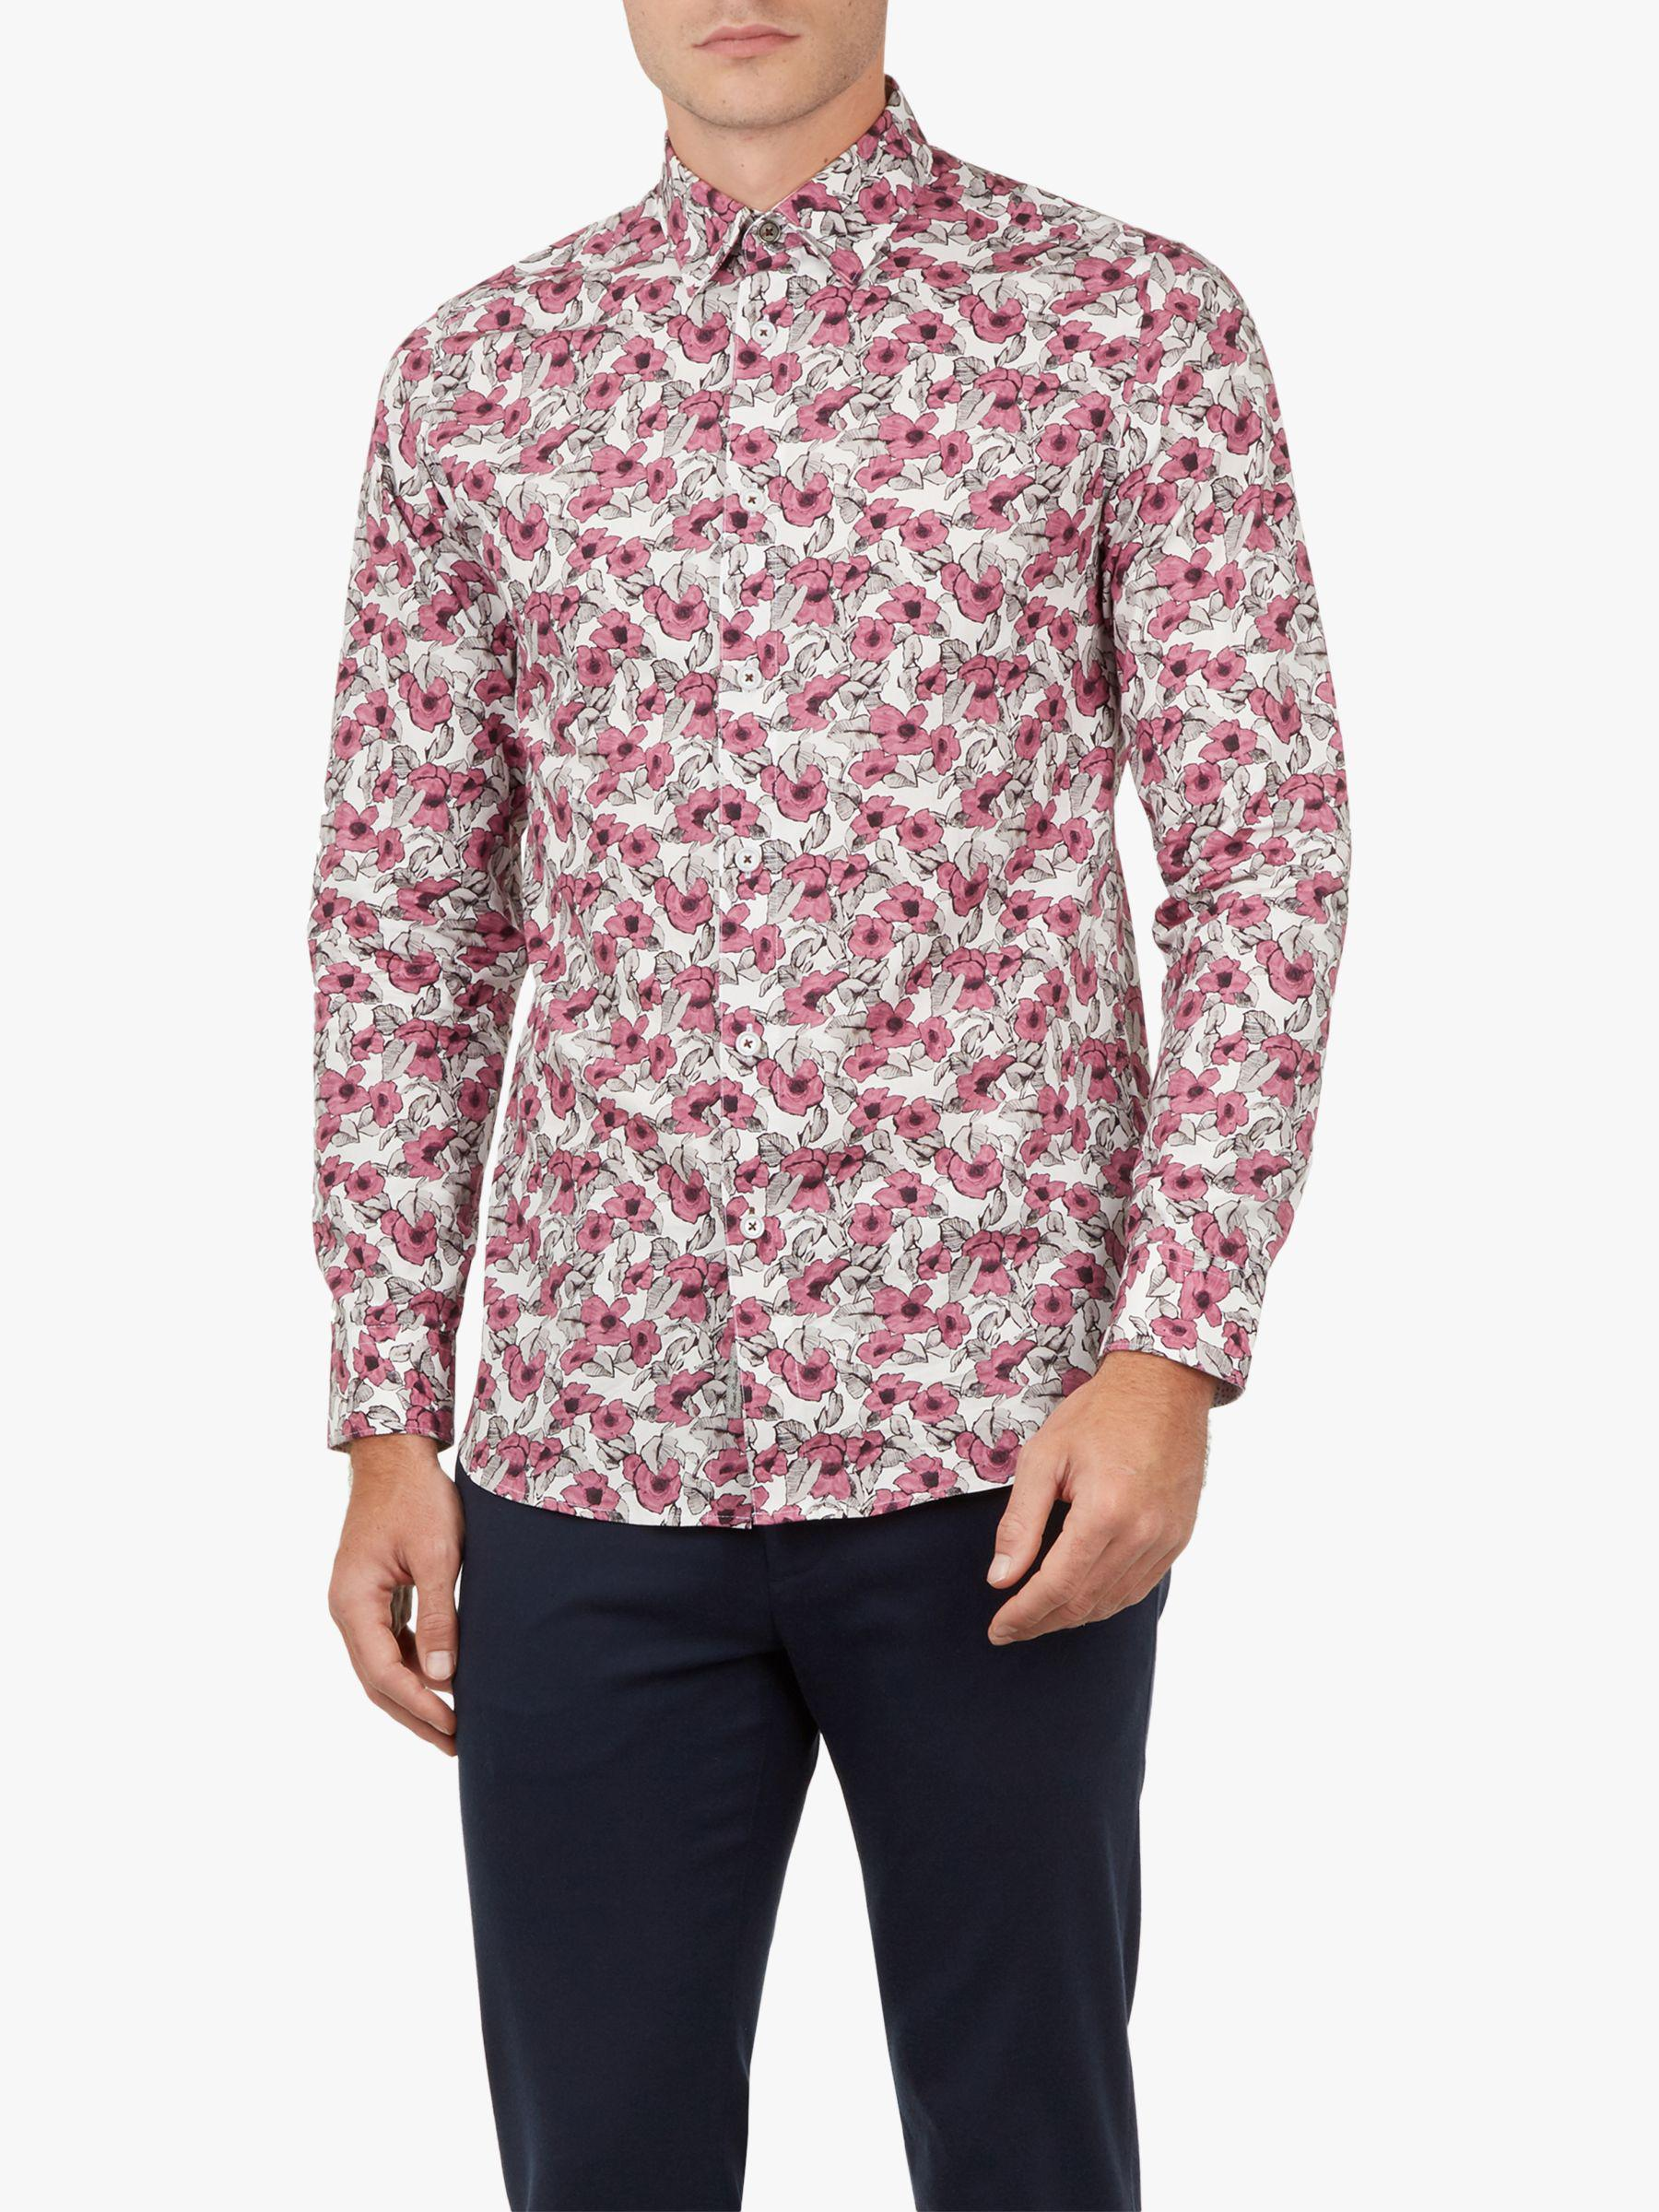 5473f14afca4 Ted Baker Croydon Long Sleeve Floral Shirt in Pink for Men - Lyst